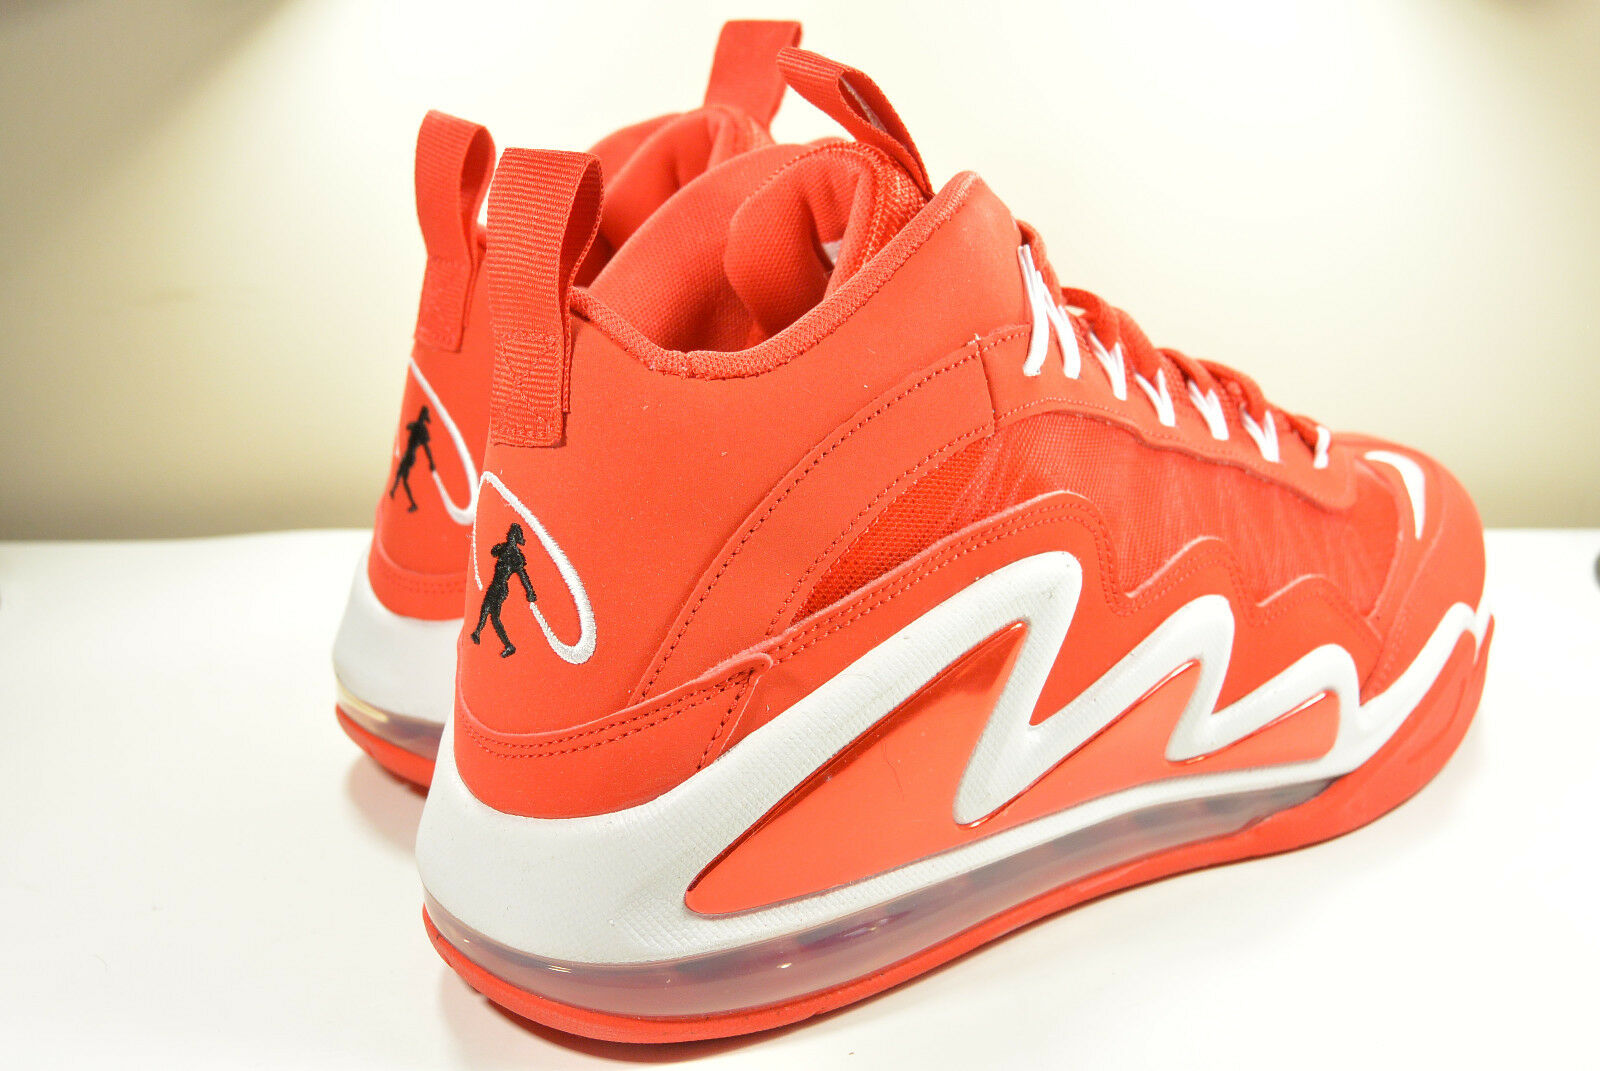 DS NIKE 2012 AIR MAX 360 DIAMOND GRIFF GRIFF GRIFF PIMENTO 15 rosso GRIFFEY I II III 180 1 190 e4411c